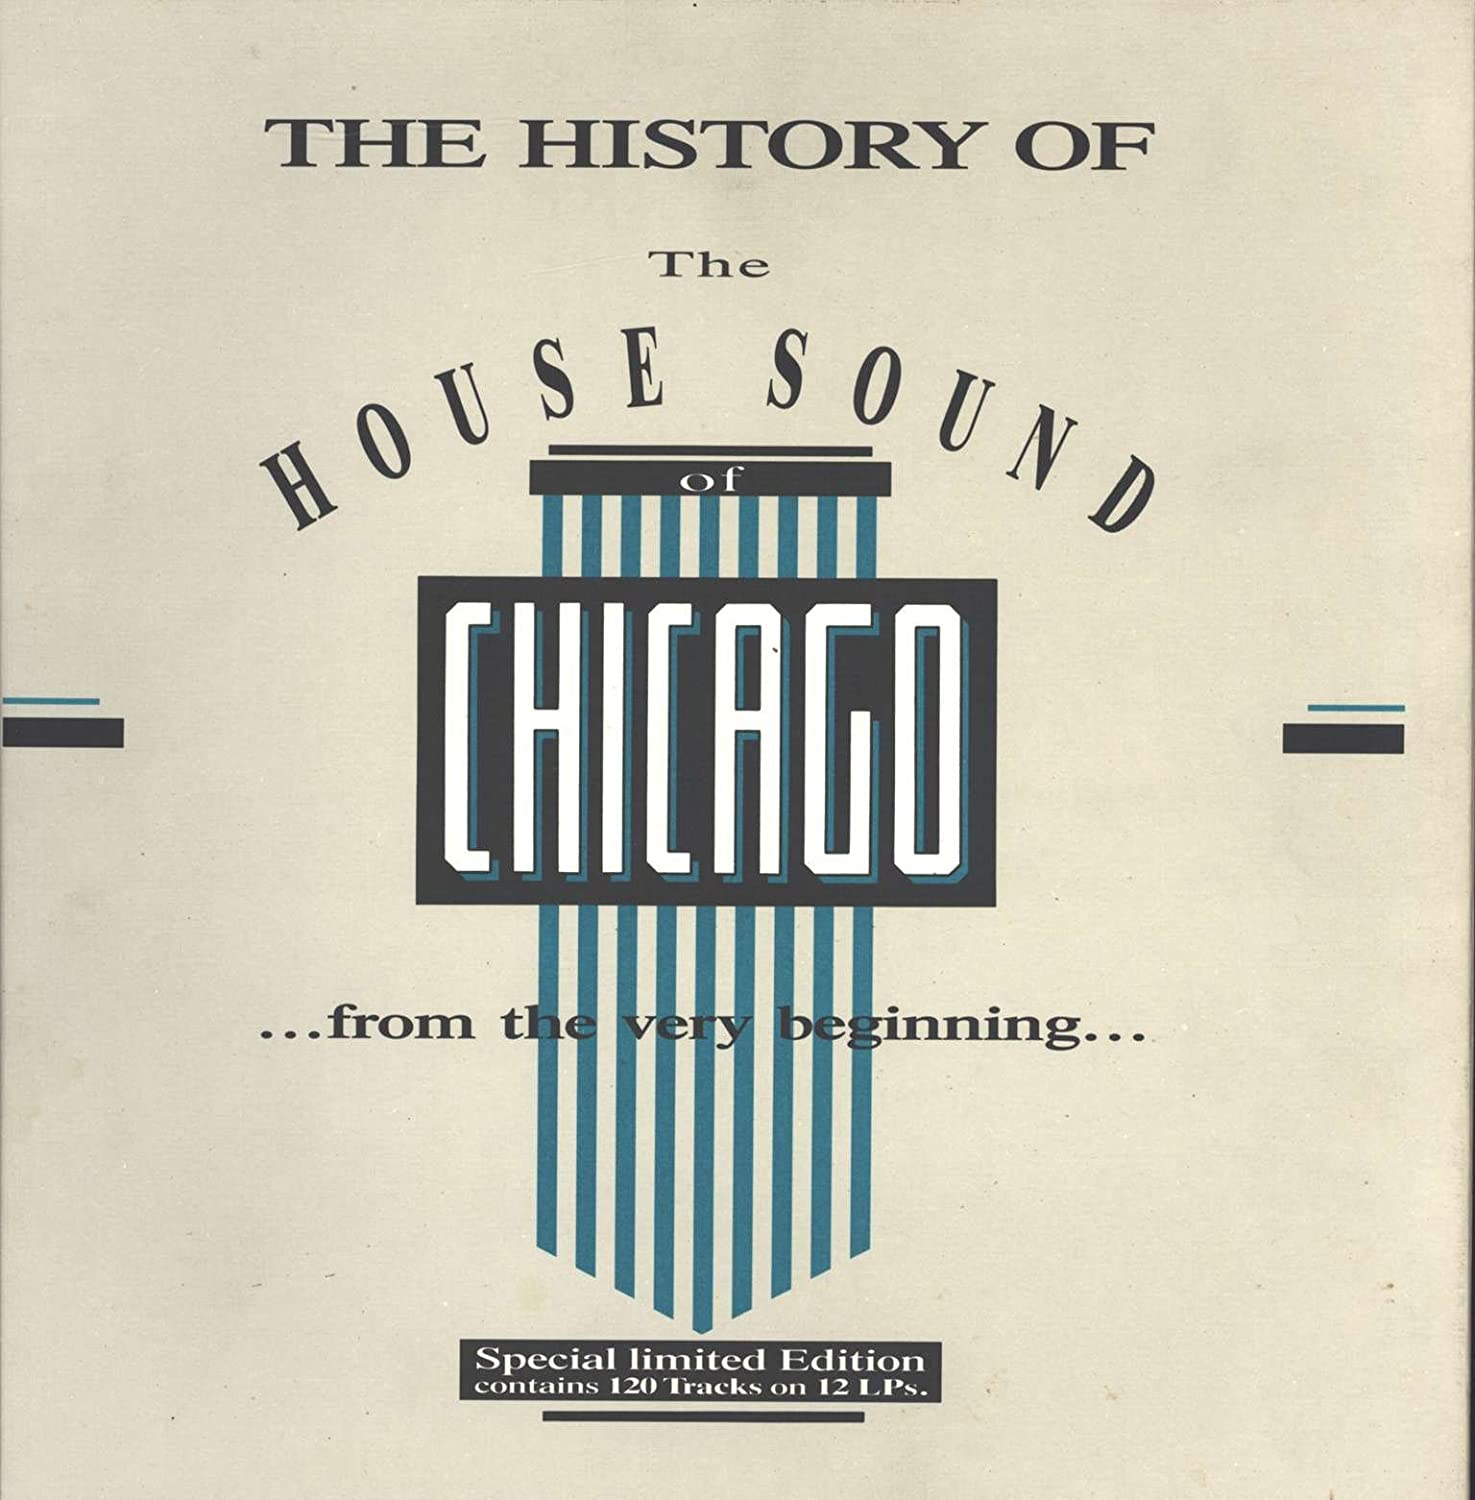 The History of Chicago House